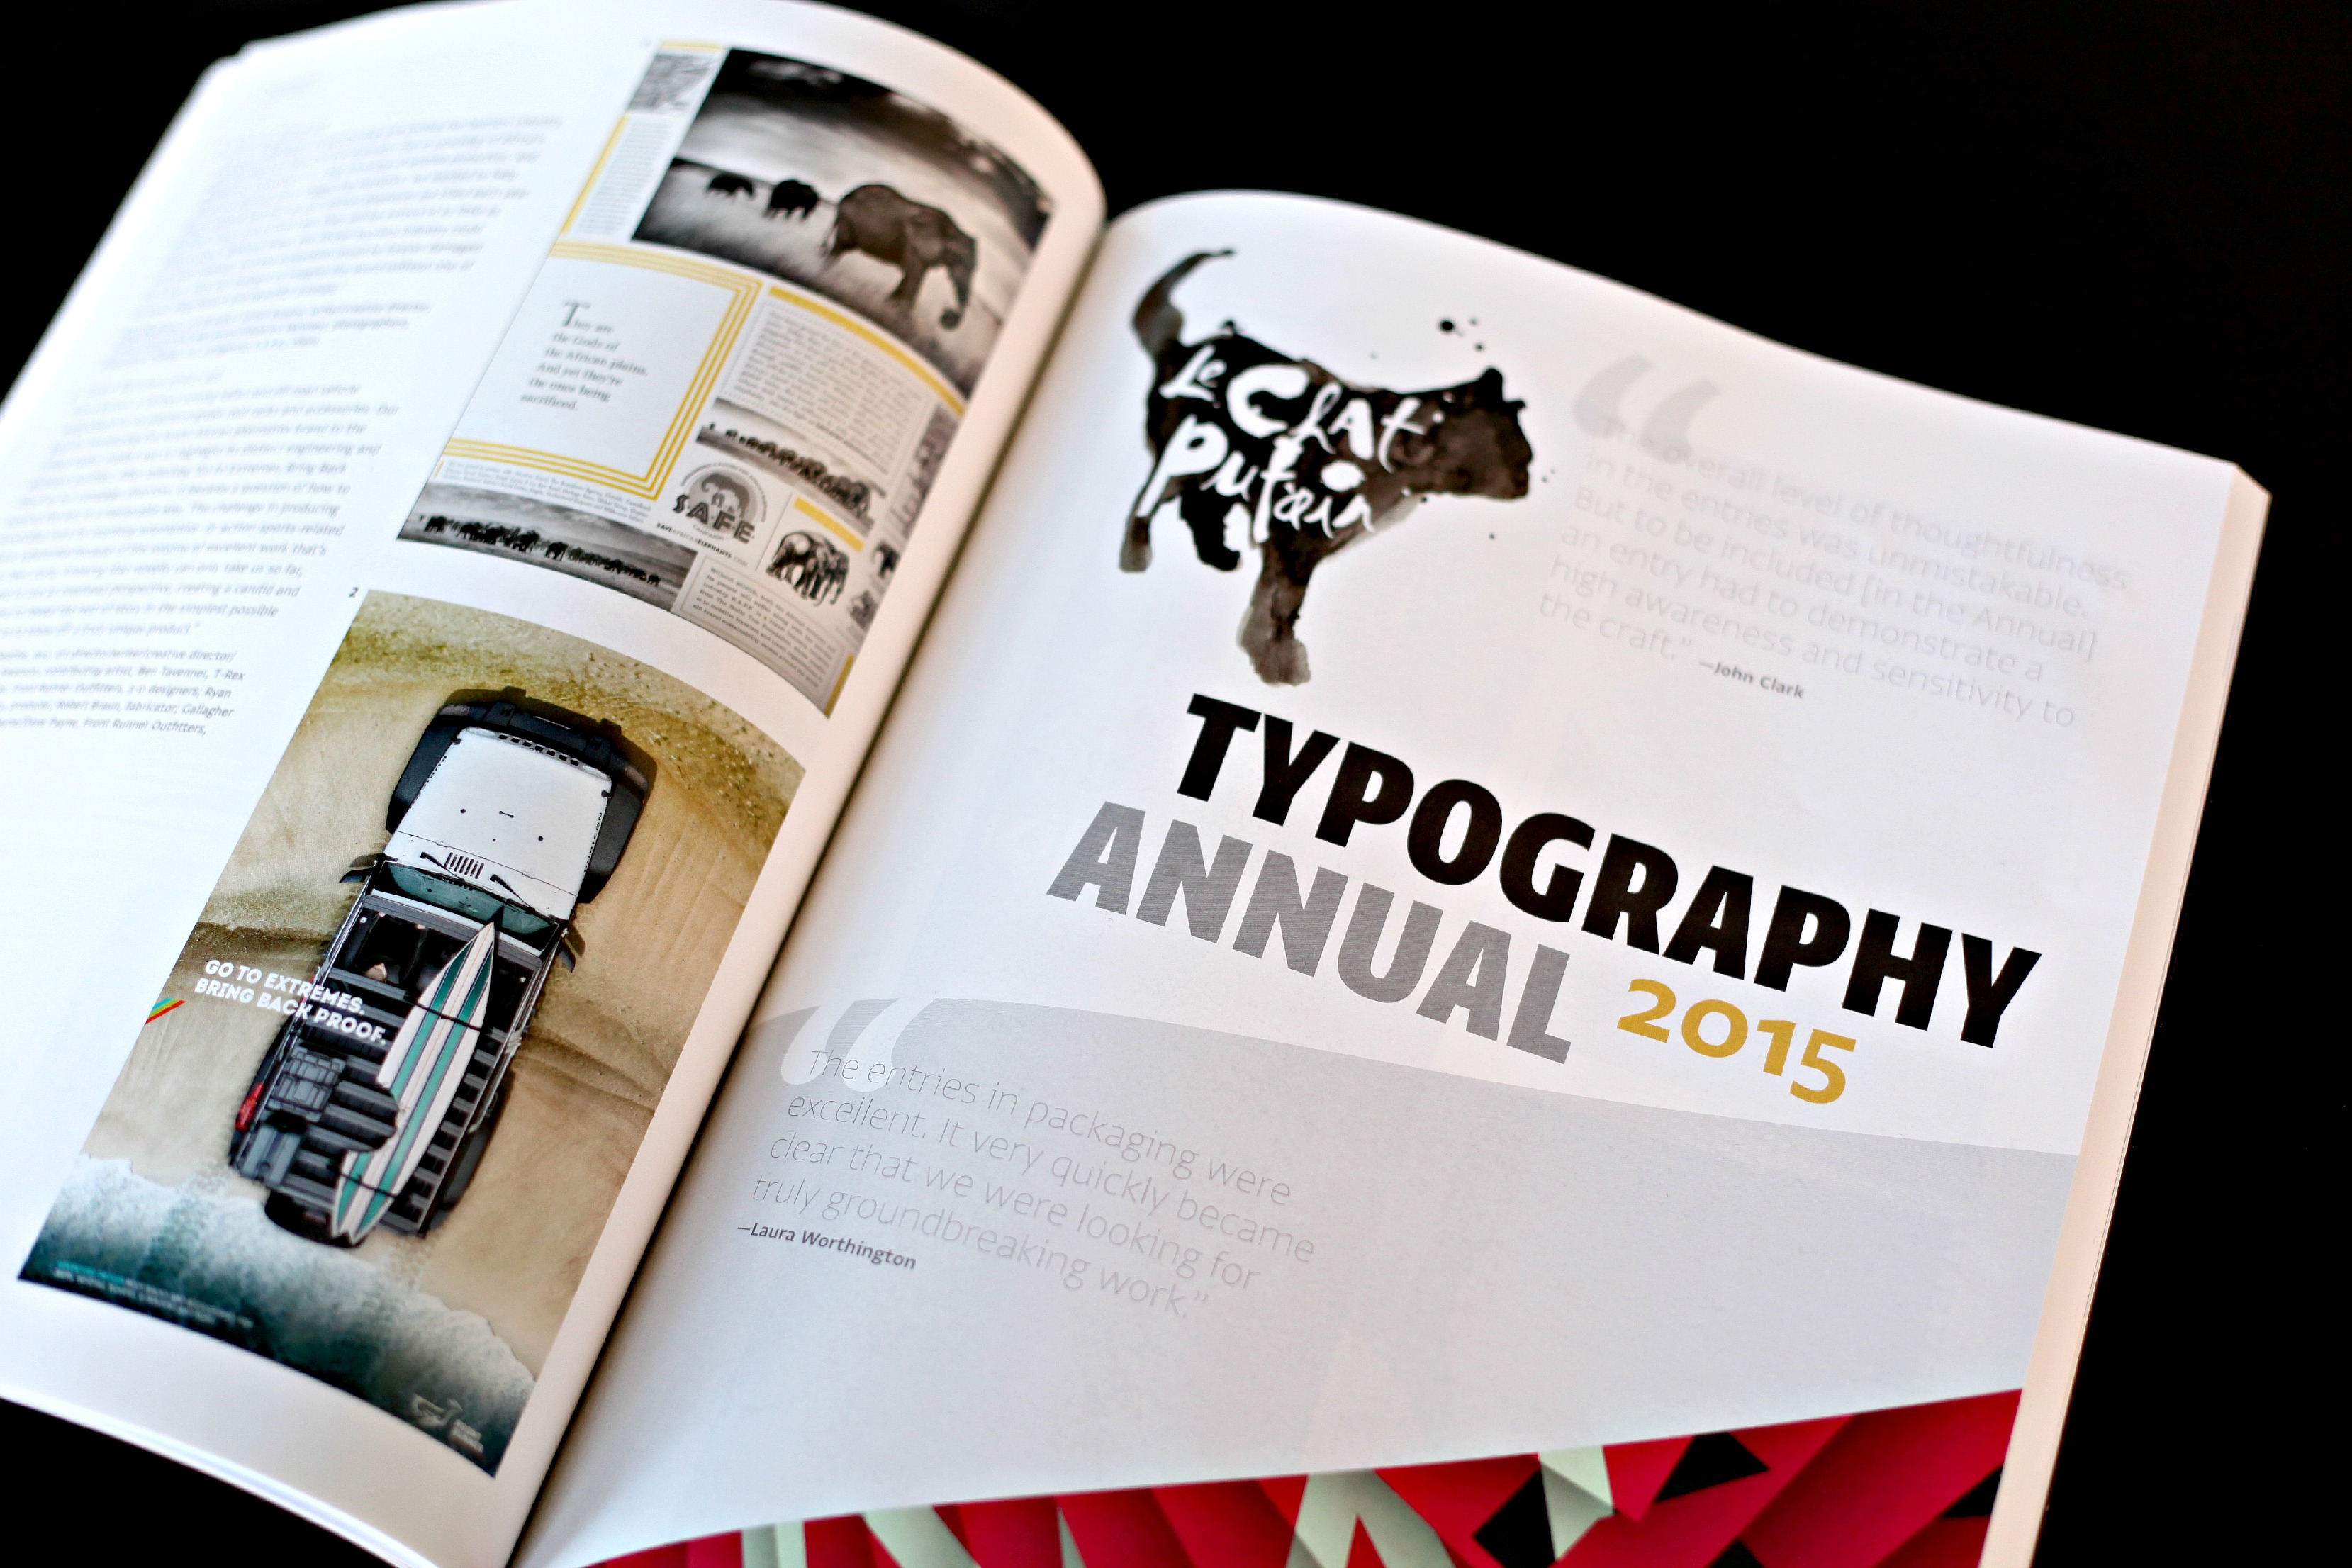 Le Chat Putain featured in CA Typography Annual 2015